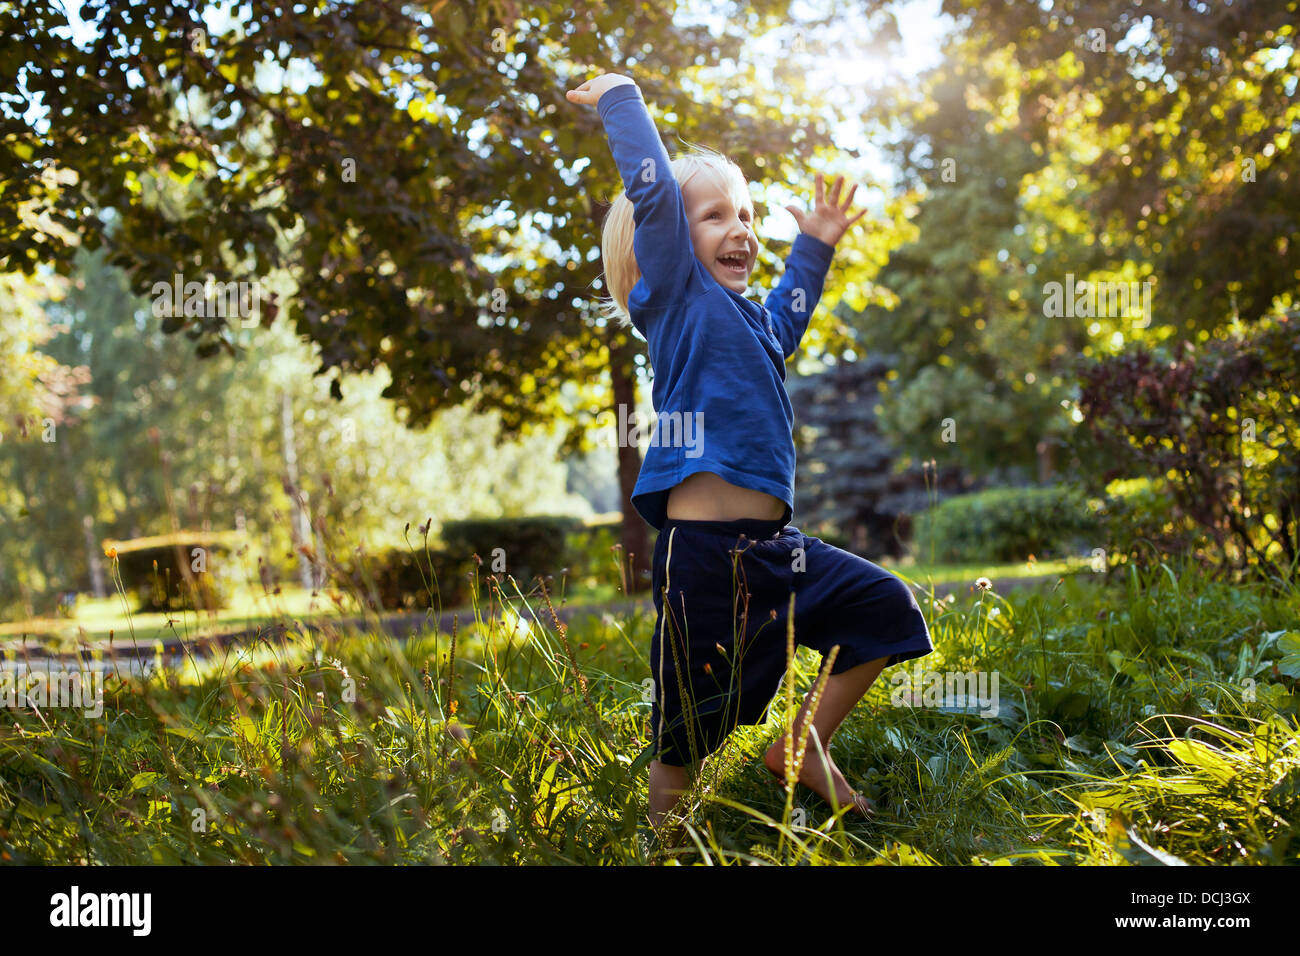 happy little boy playing in the park outdoors - Stock Image